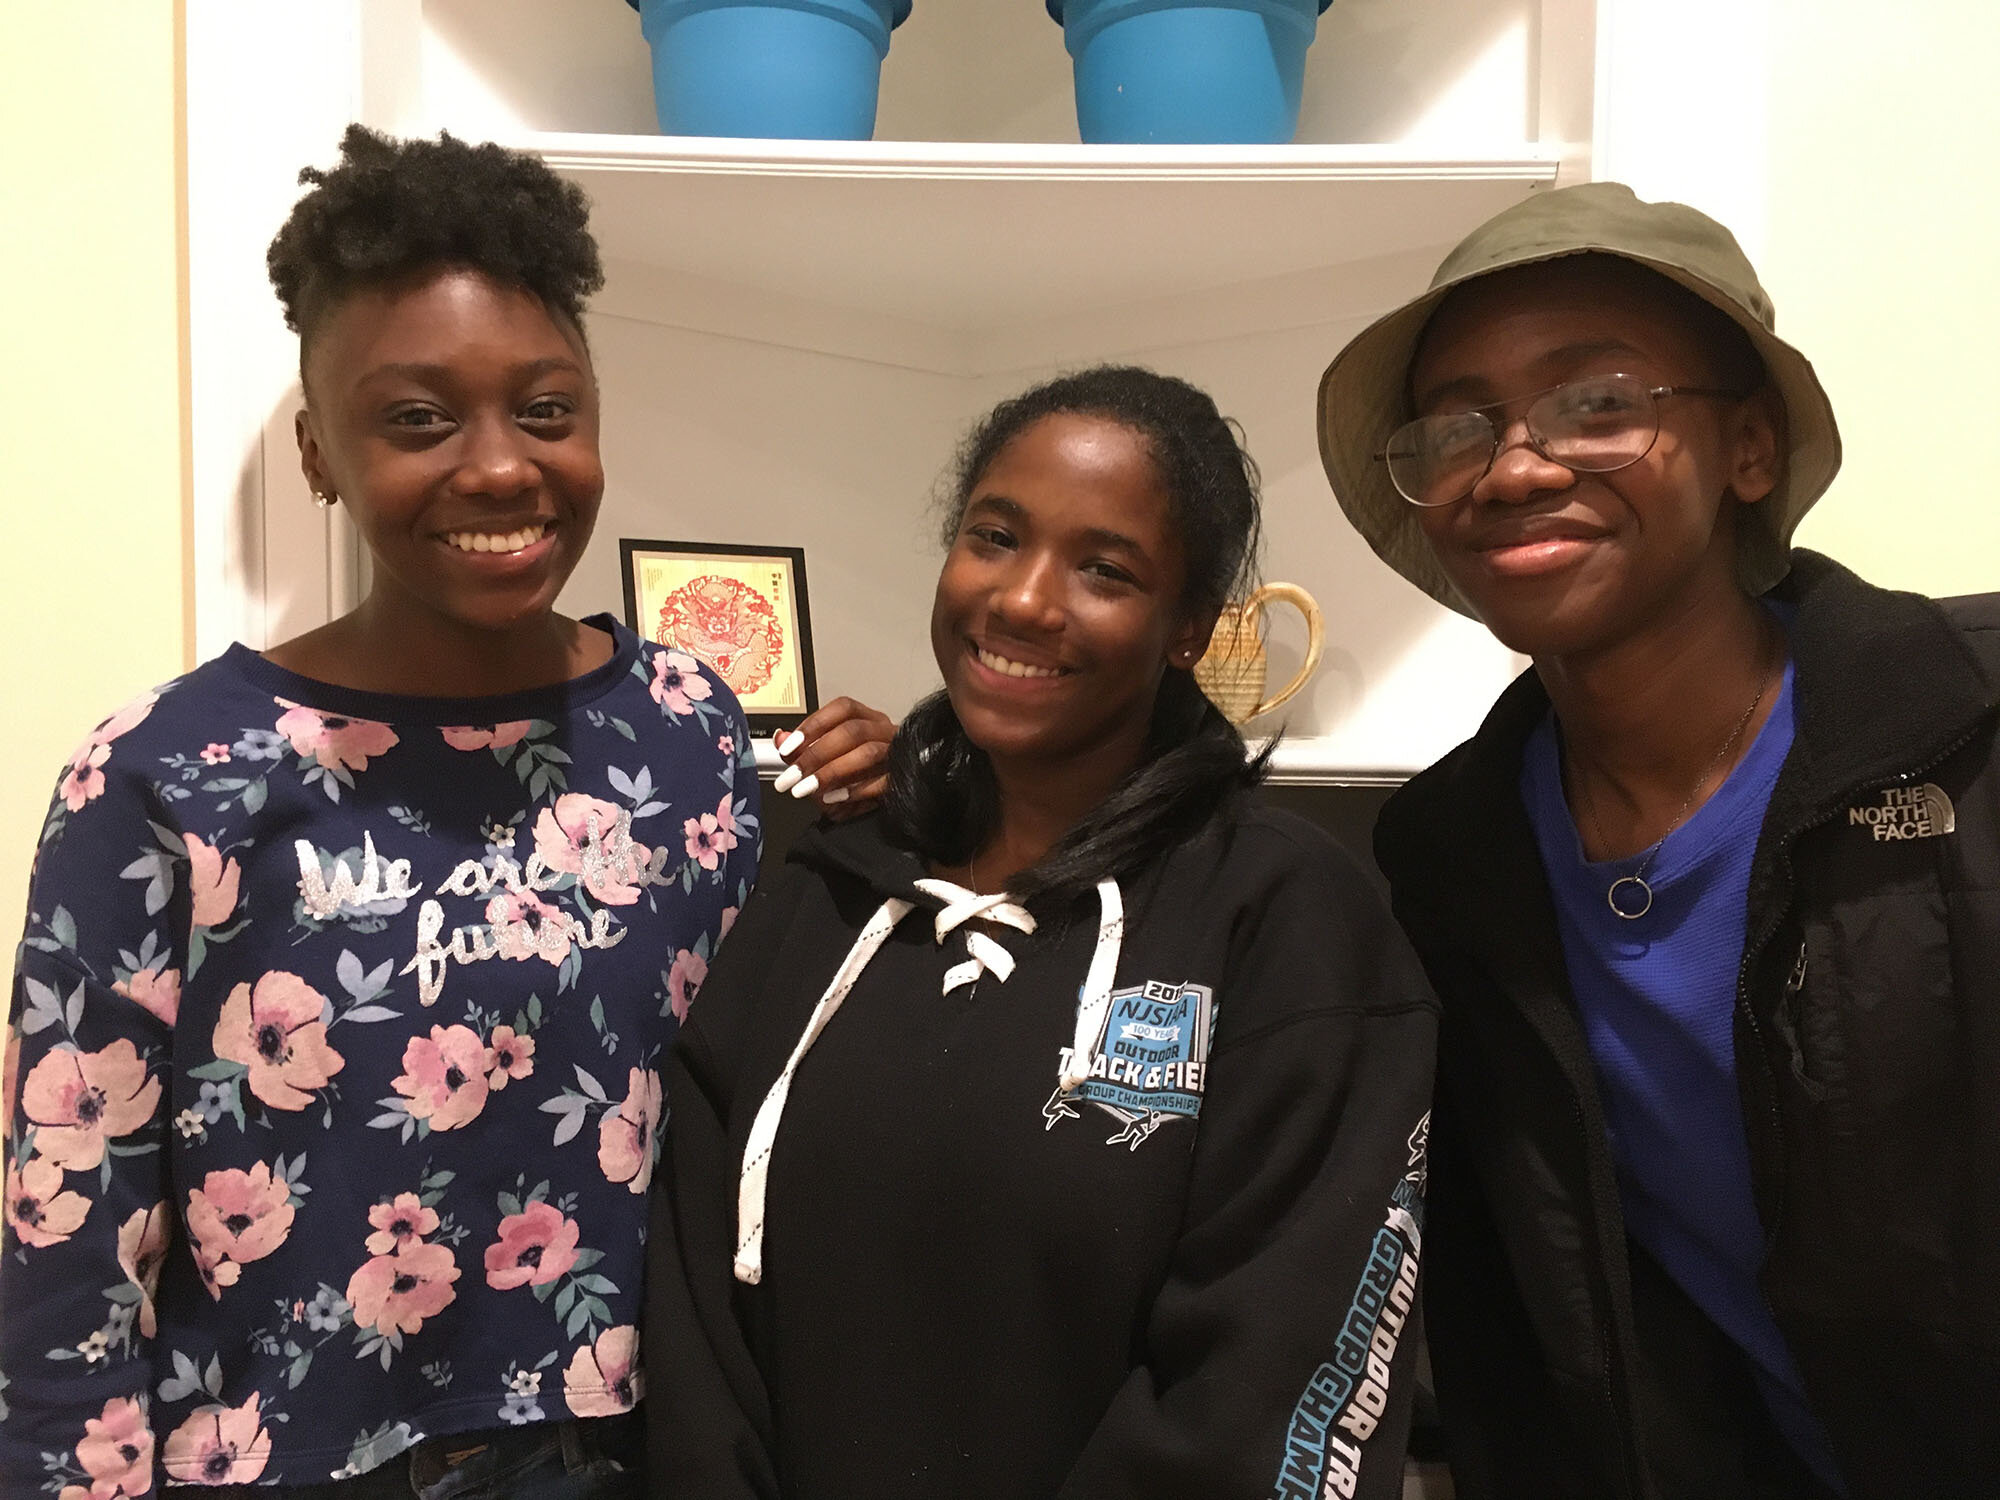 A Better Chance – Strath Haven scholars (left to right) Amayah Wade, Teghan Sydnor, and Assane Wade moved into the ABC house on Harvard Avenue this fall to continue their education at Strath Haven High School.  Photo is by ABC scholar Elia Brooks-Sims.